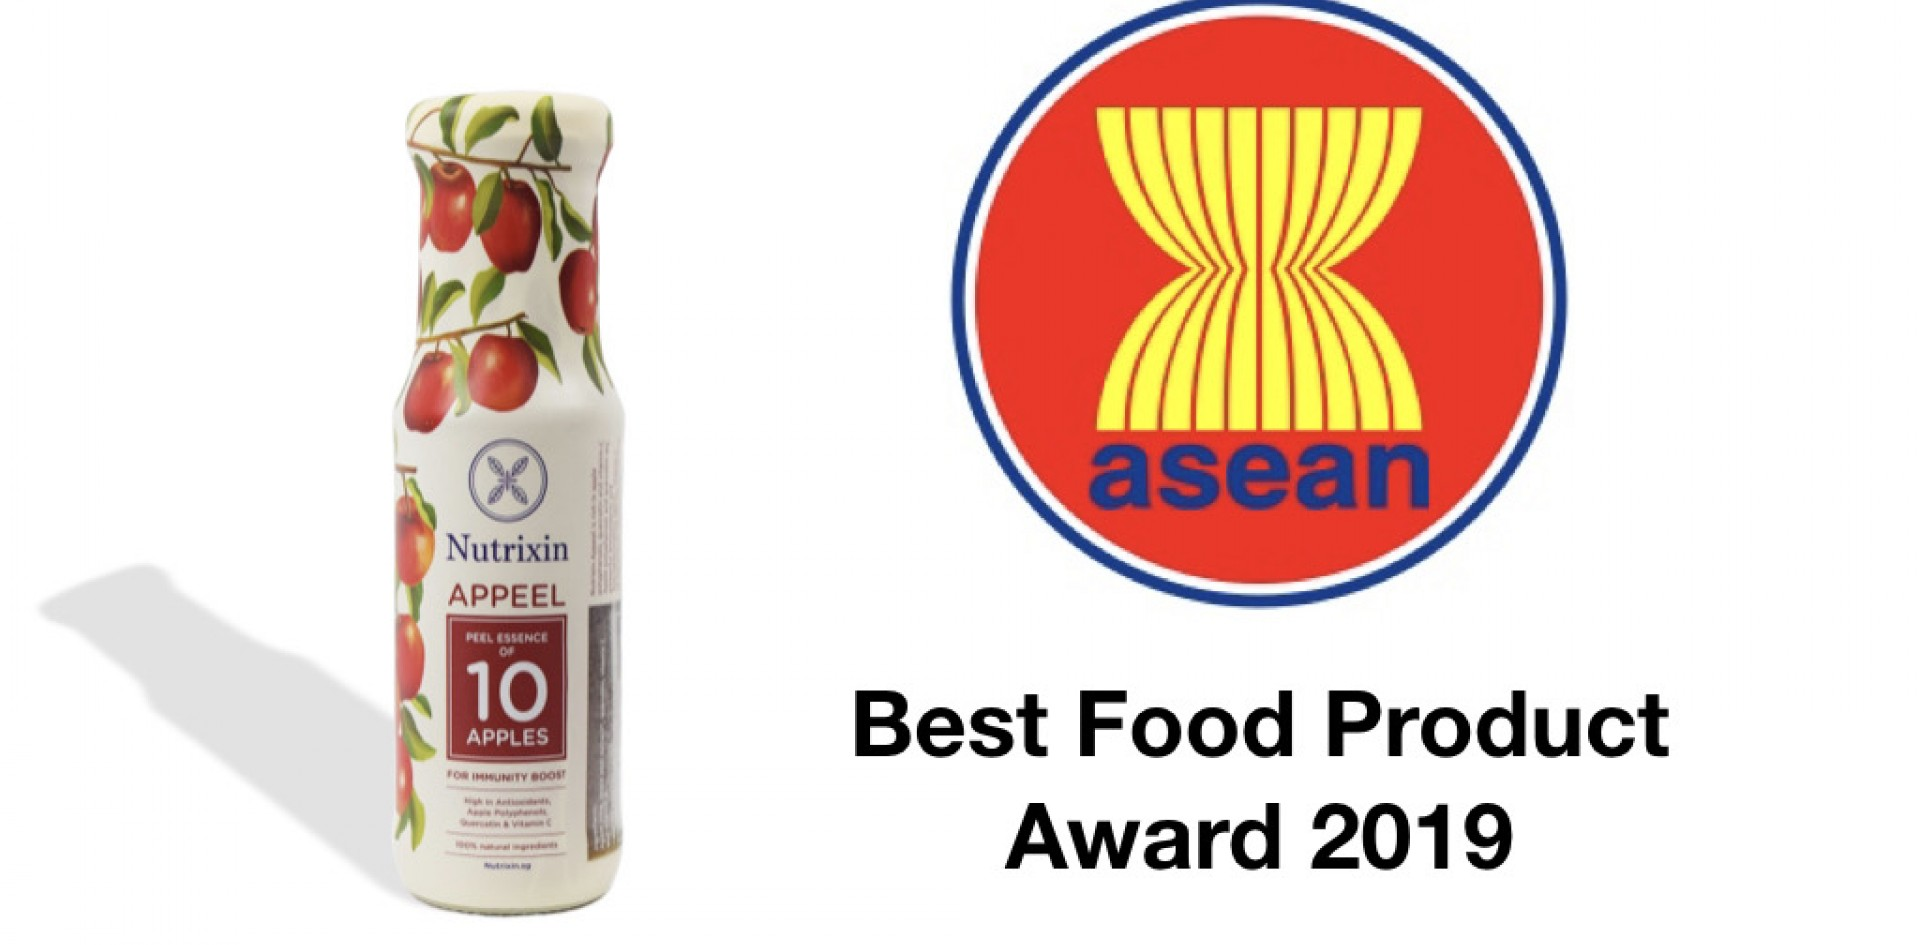 ASEAN Best Food Product Award 2019